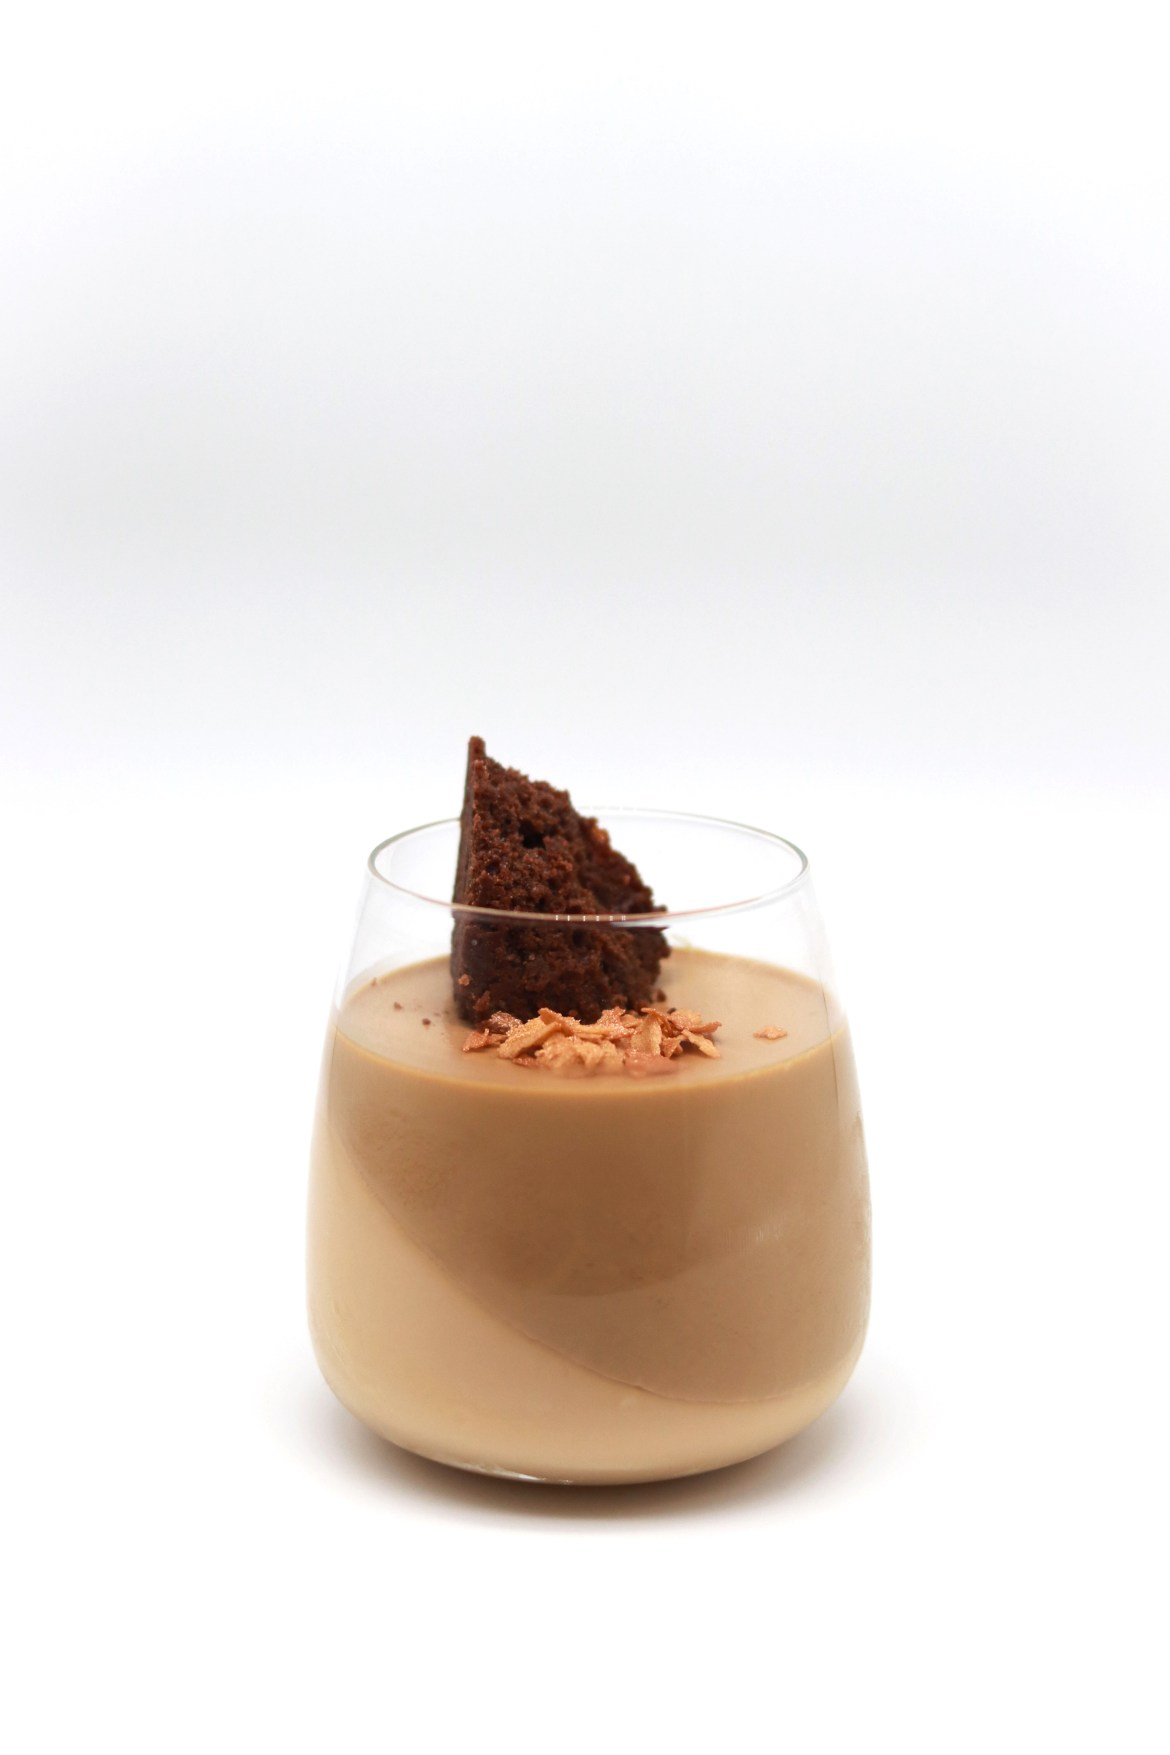 Yuen Yeung - Milk Tea Coffee Panna Cotta with Flourless Chocolate Cake2